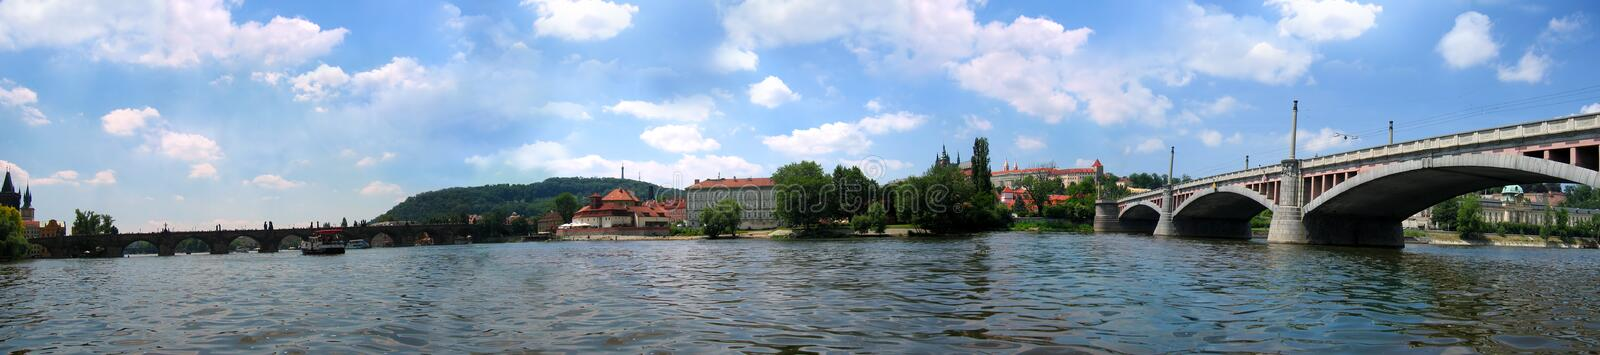 Panorama de Praga do rio fotografia de stock